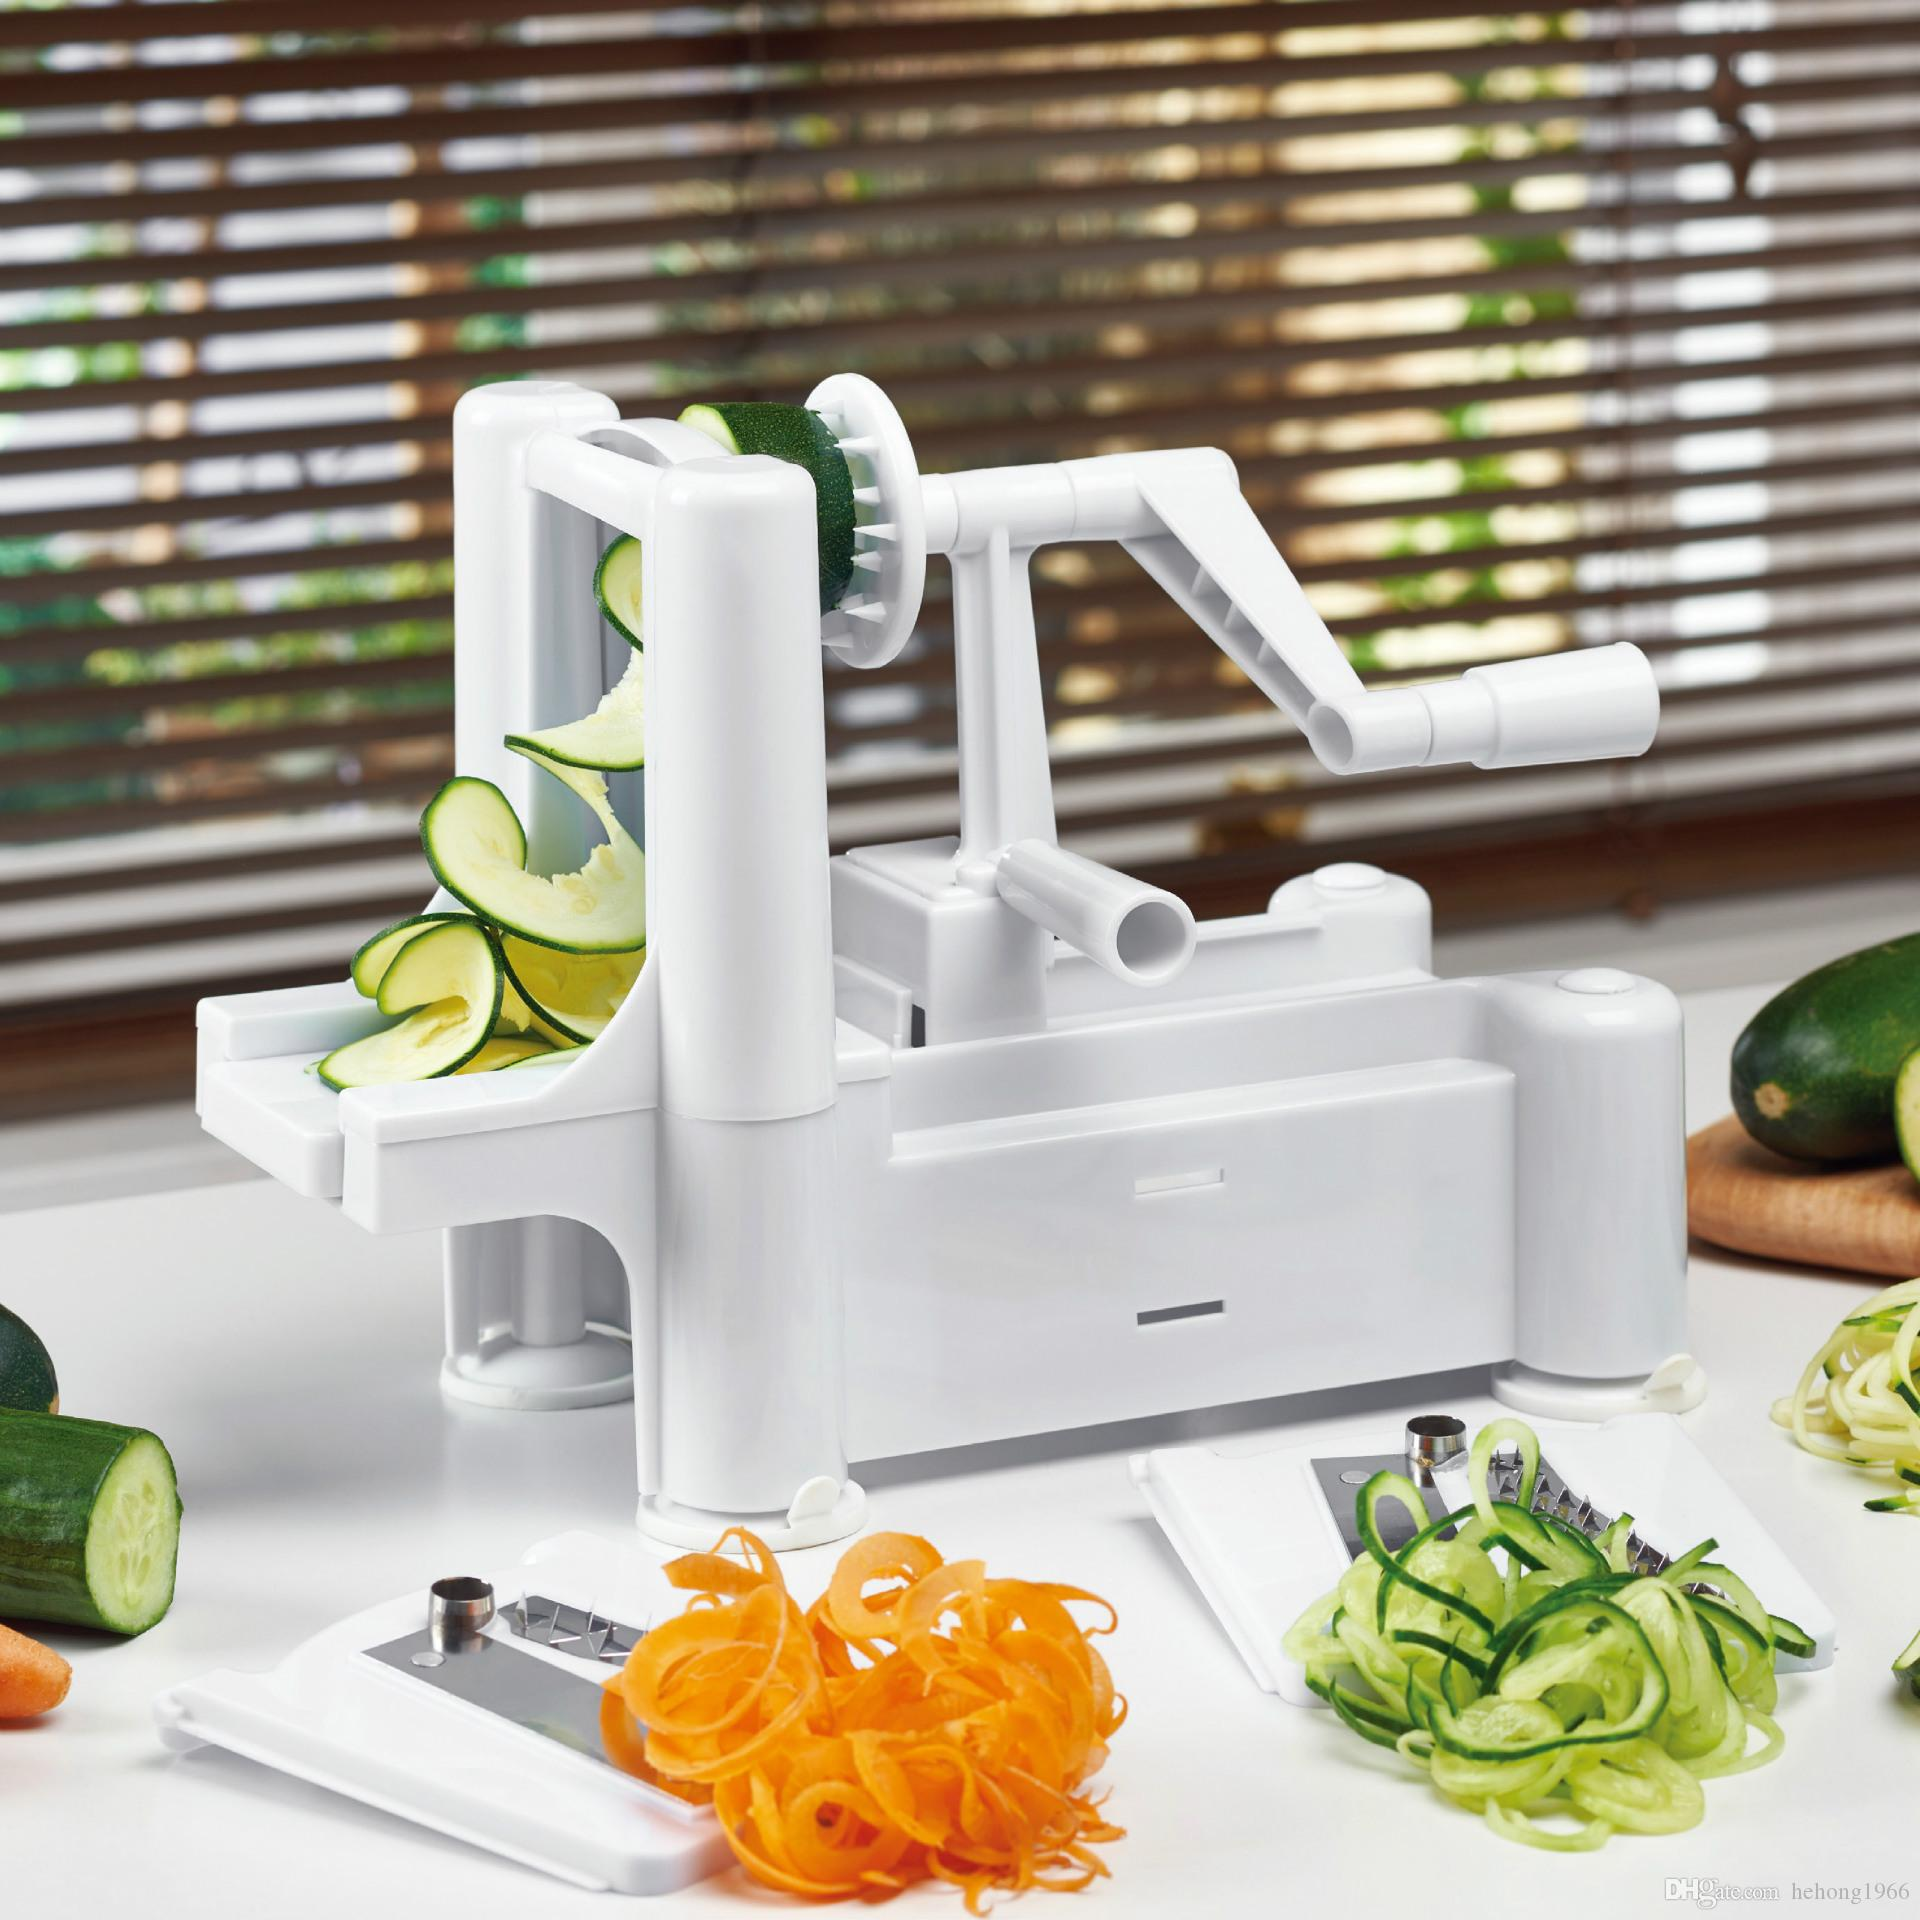 kitchen food slicer pre assembled cabinets online 2019 hand cutting machine spiral vegetable 3 in 1 multi function fruit cutter fashion twister peeler tool 28wa kk from hehong1966